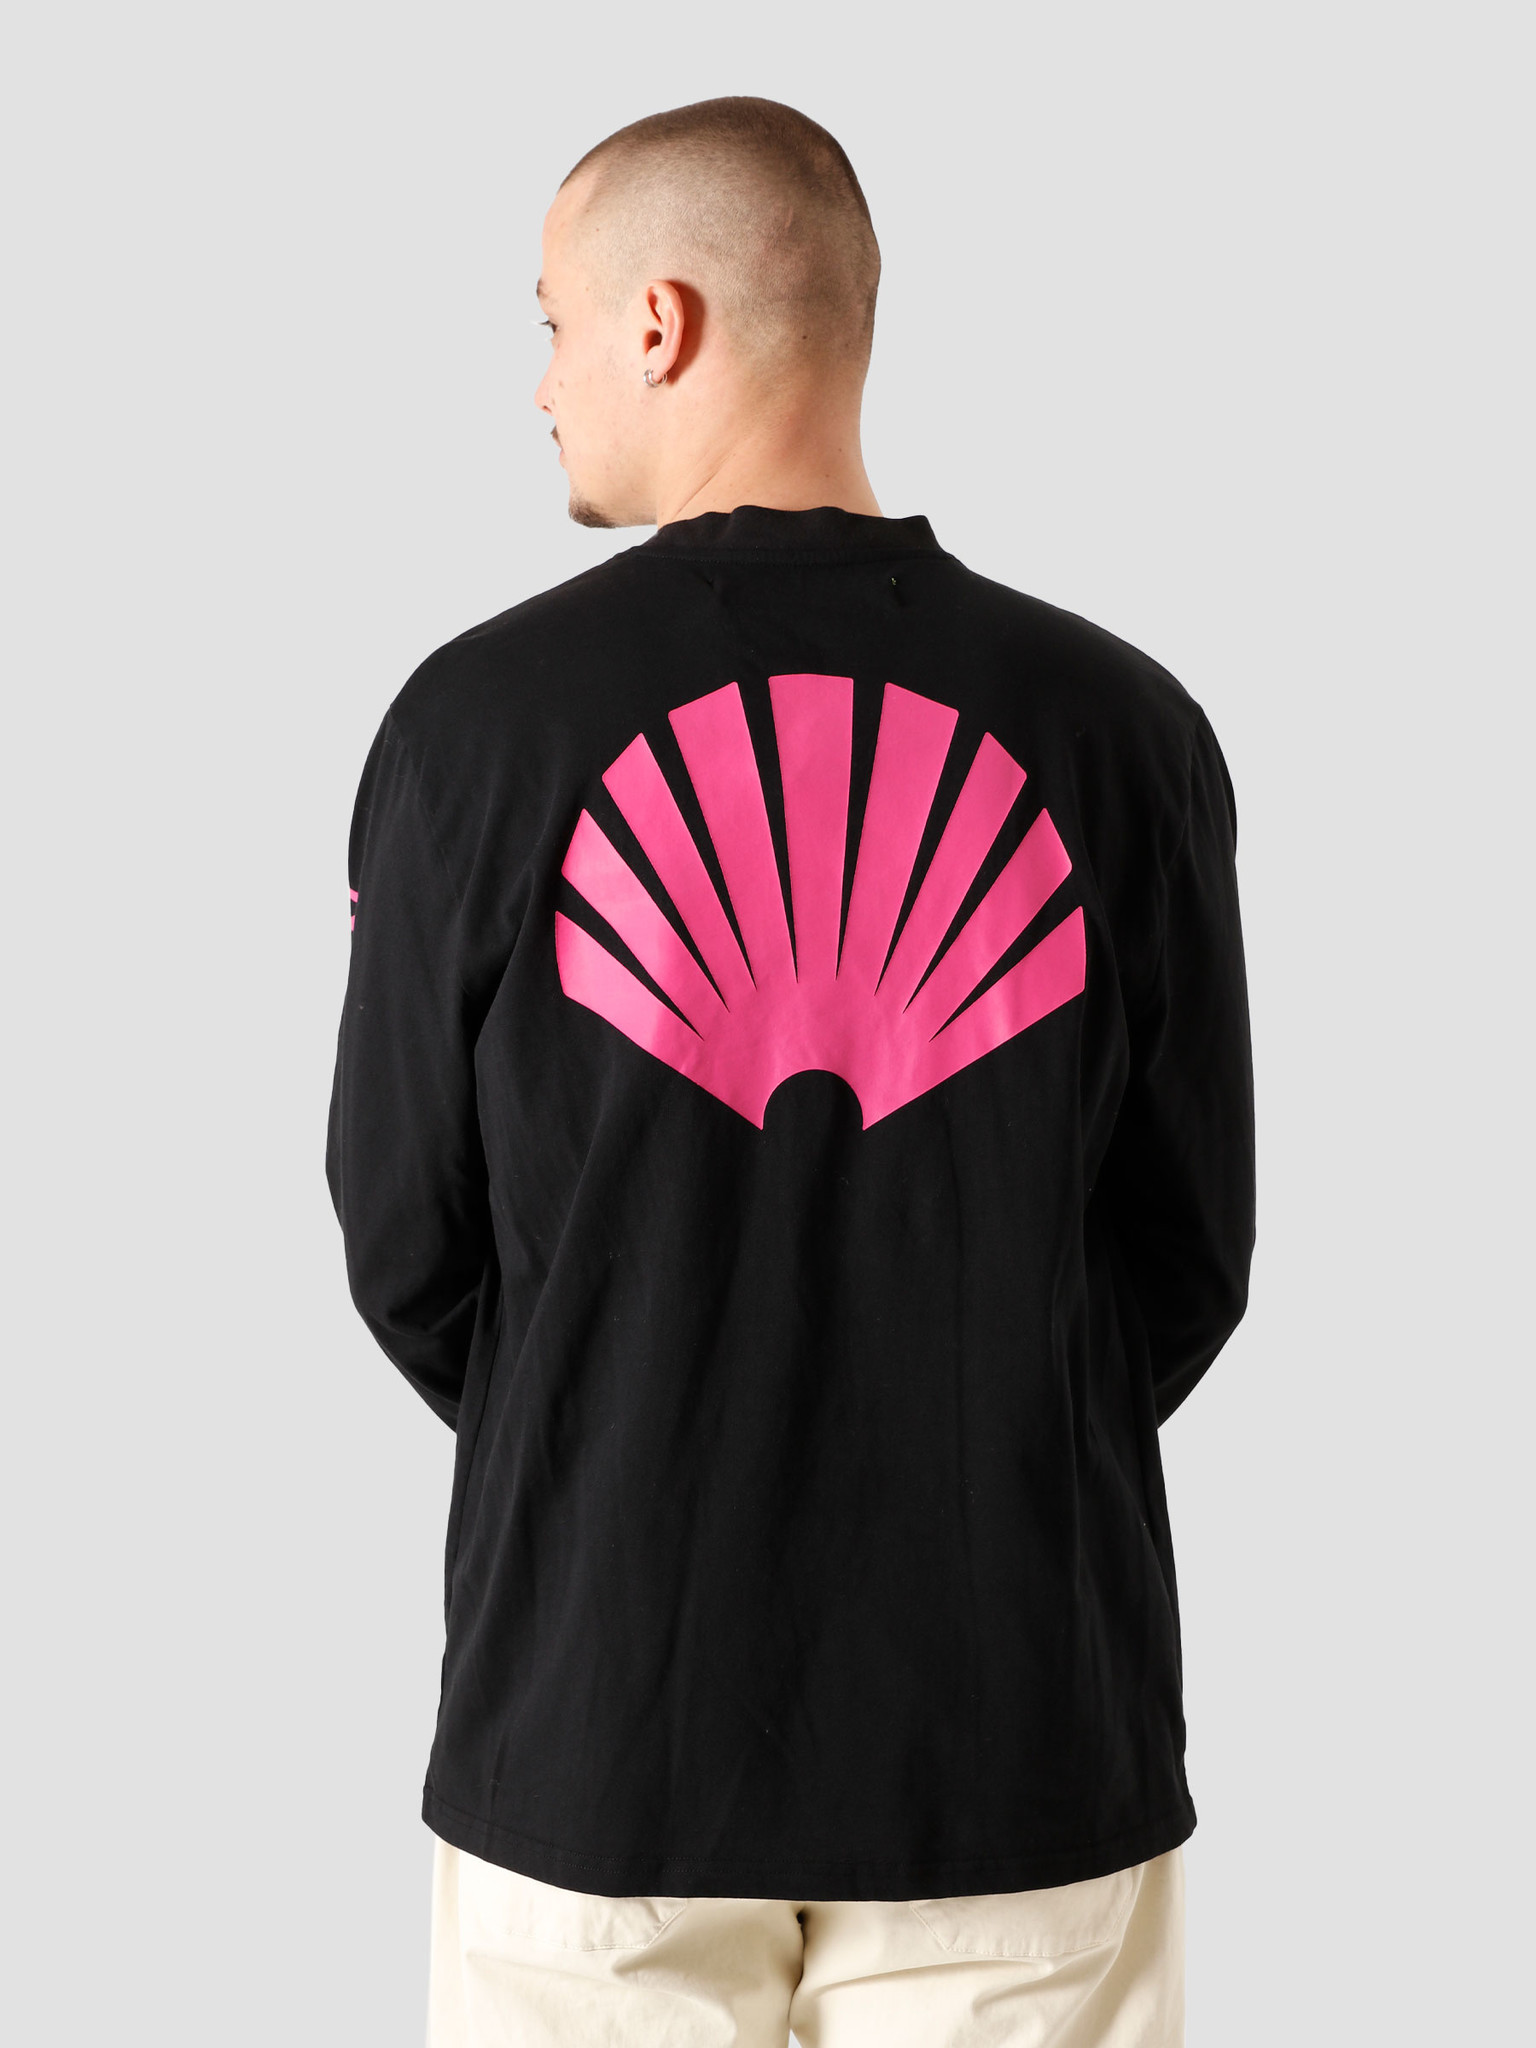 New Amsterdam Surf Association New Amsterdam Surf association Logo Longsleeve Black Magenta 2021019